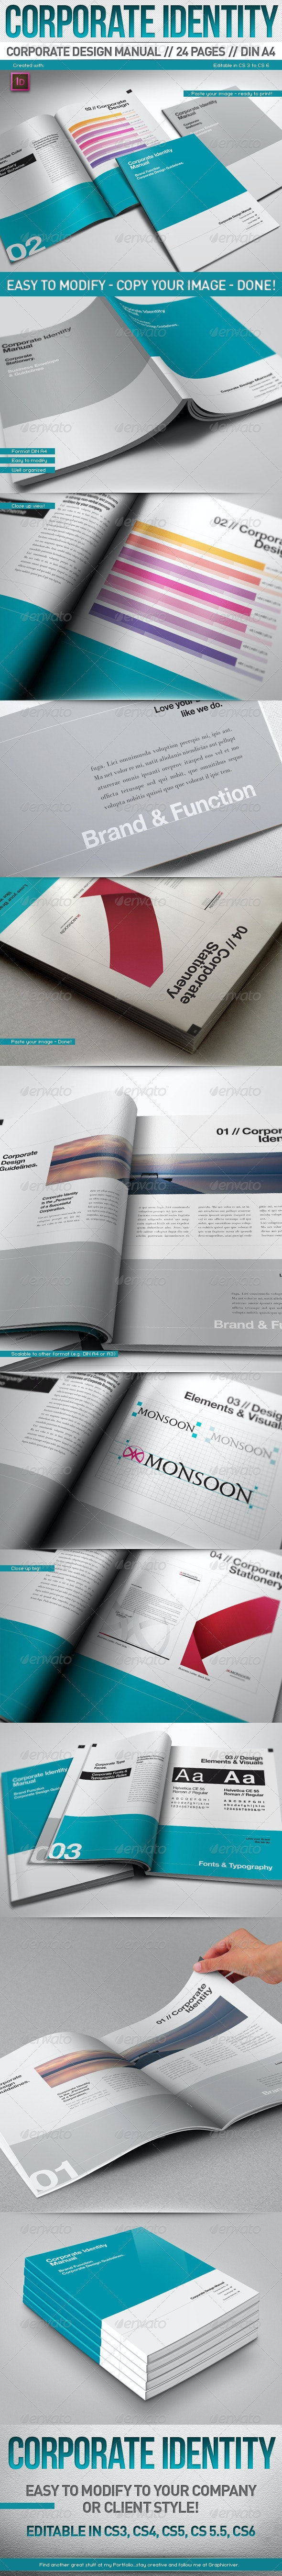 Corporate Design Manual Guide DIN A4 // 24 Pages - Corporate Brochures